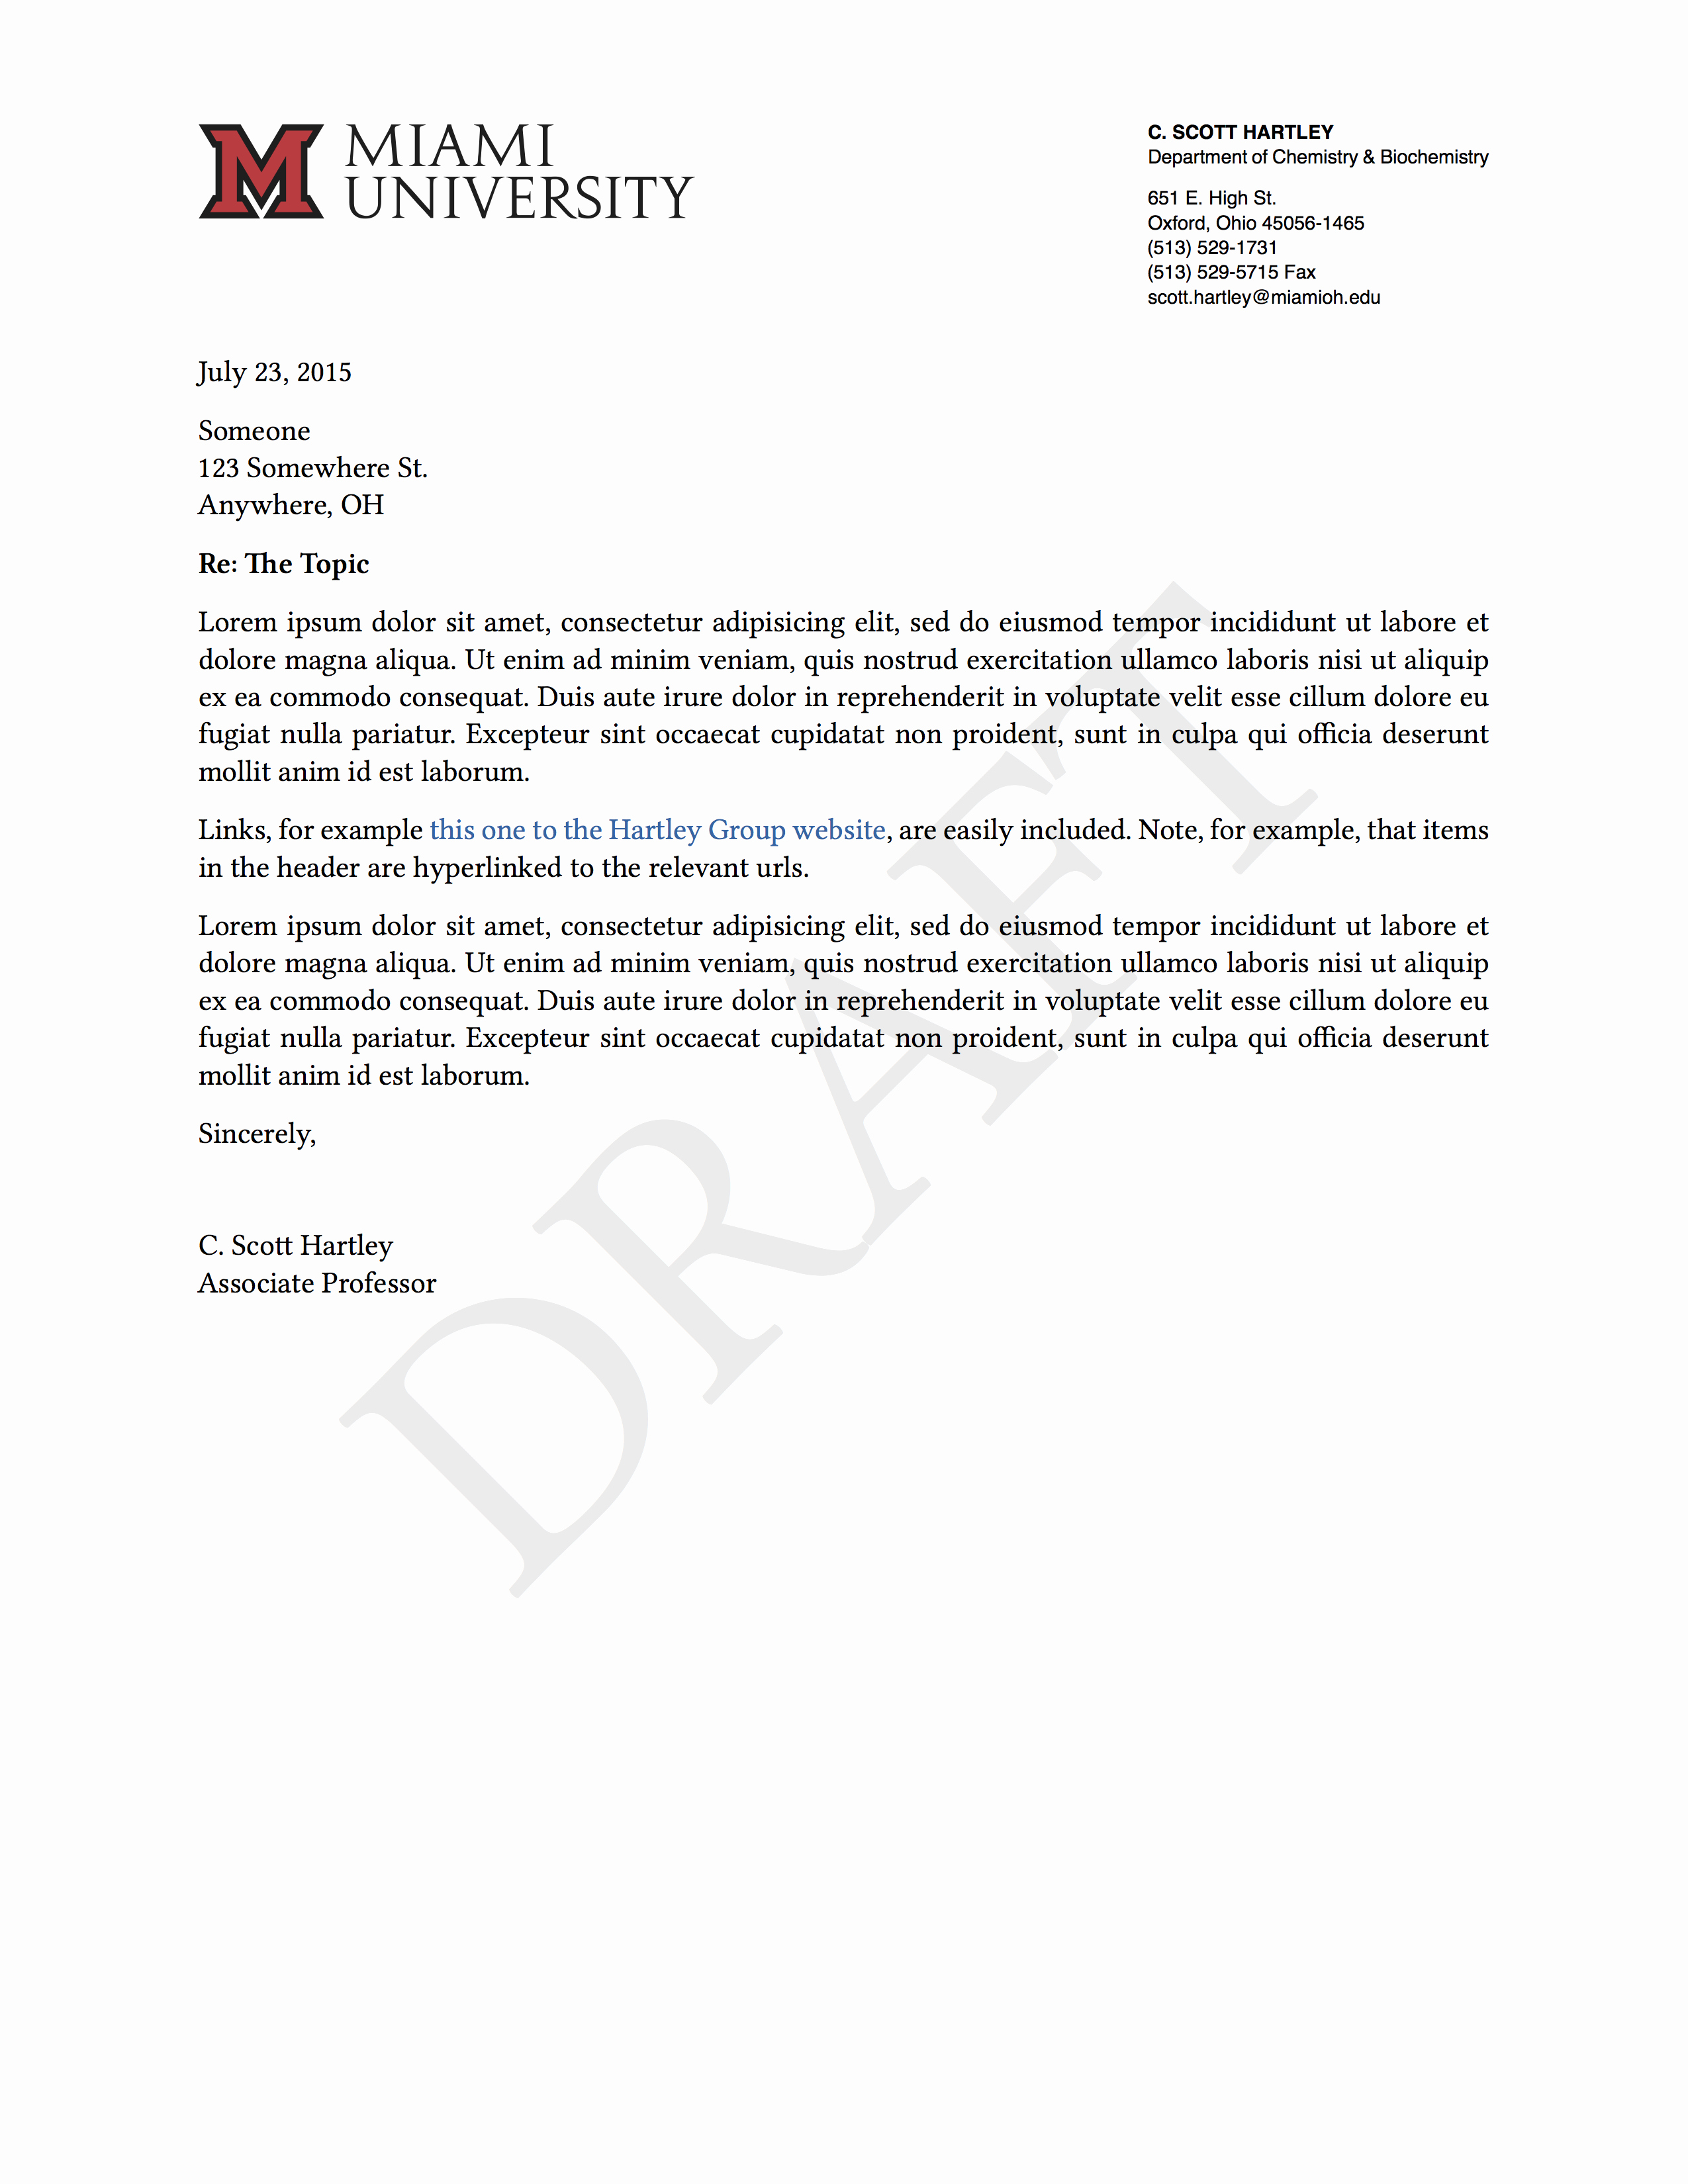 Letter Of Recommendation with Letterhead Elegant A Pandoc Template for Letterhead